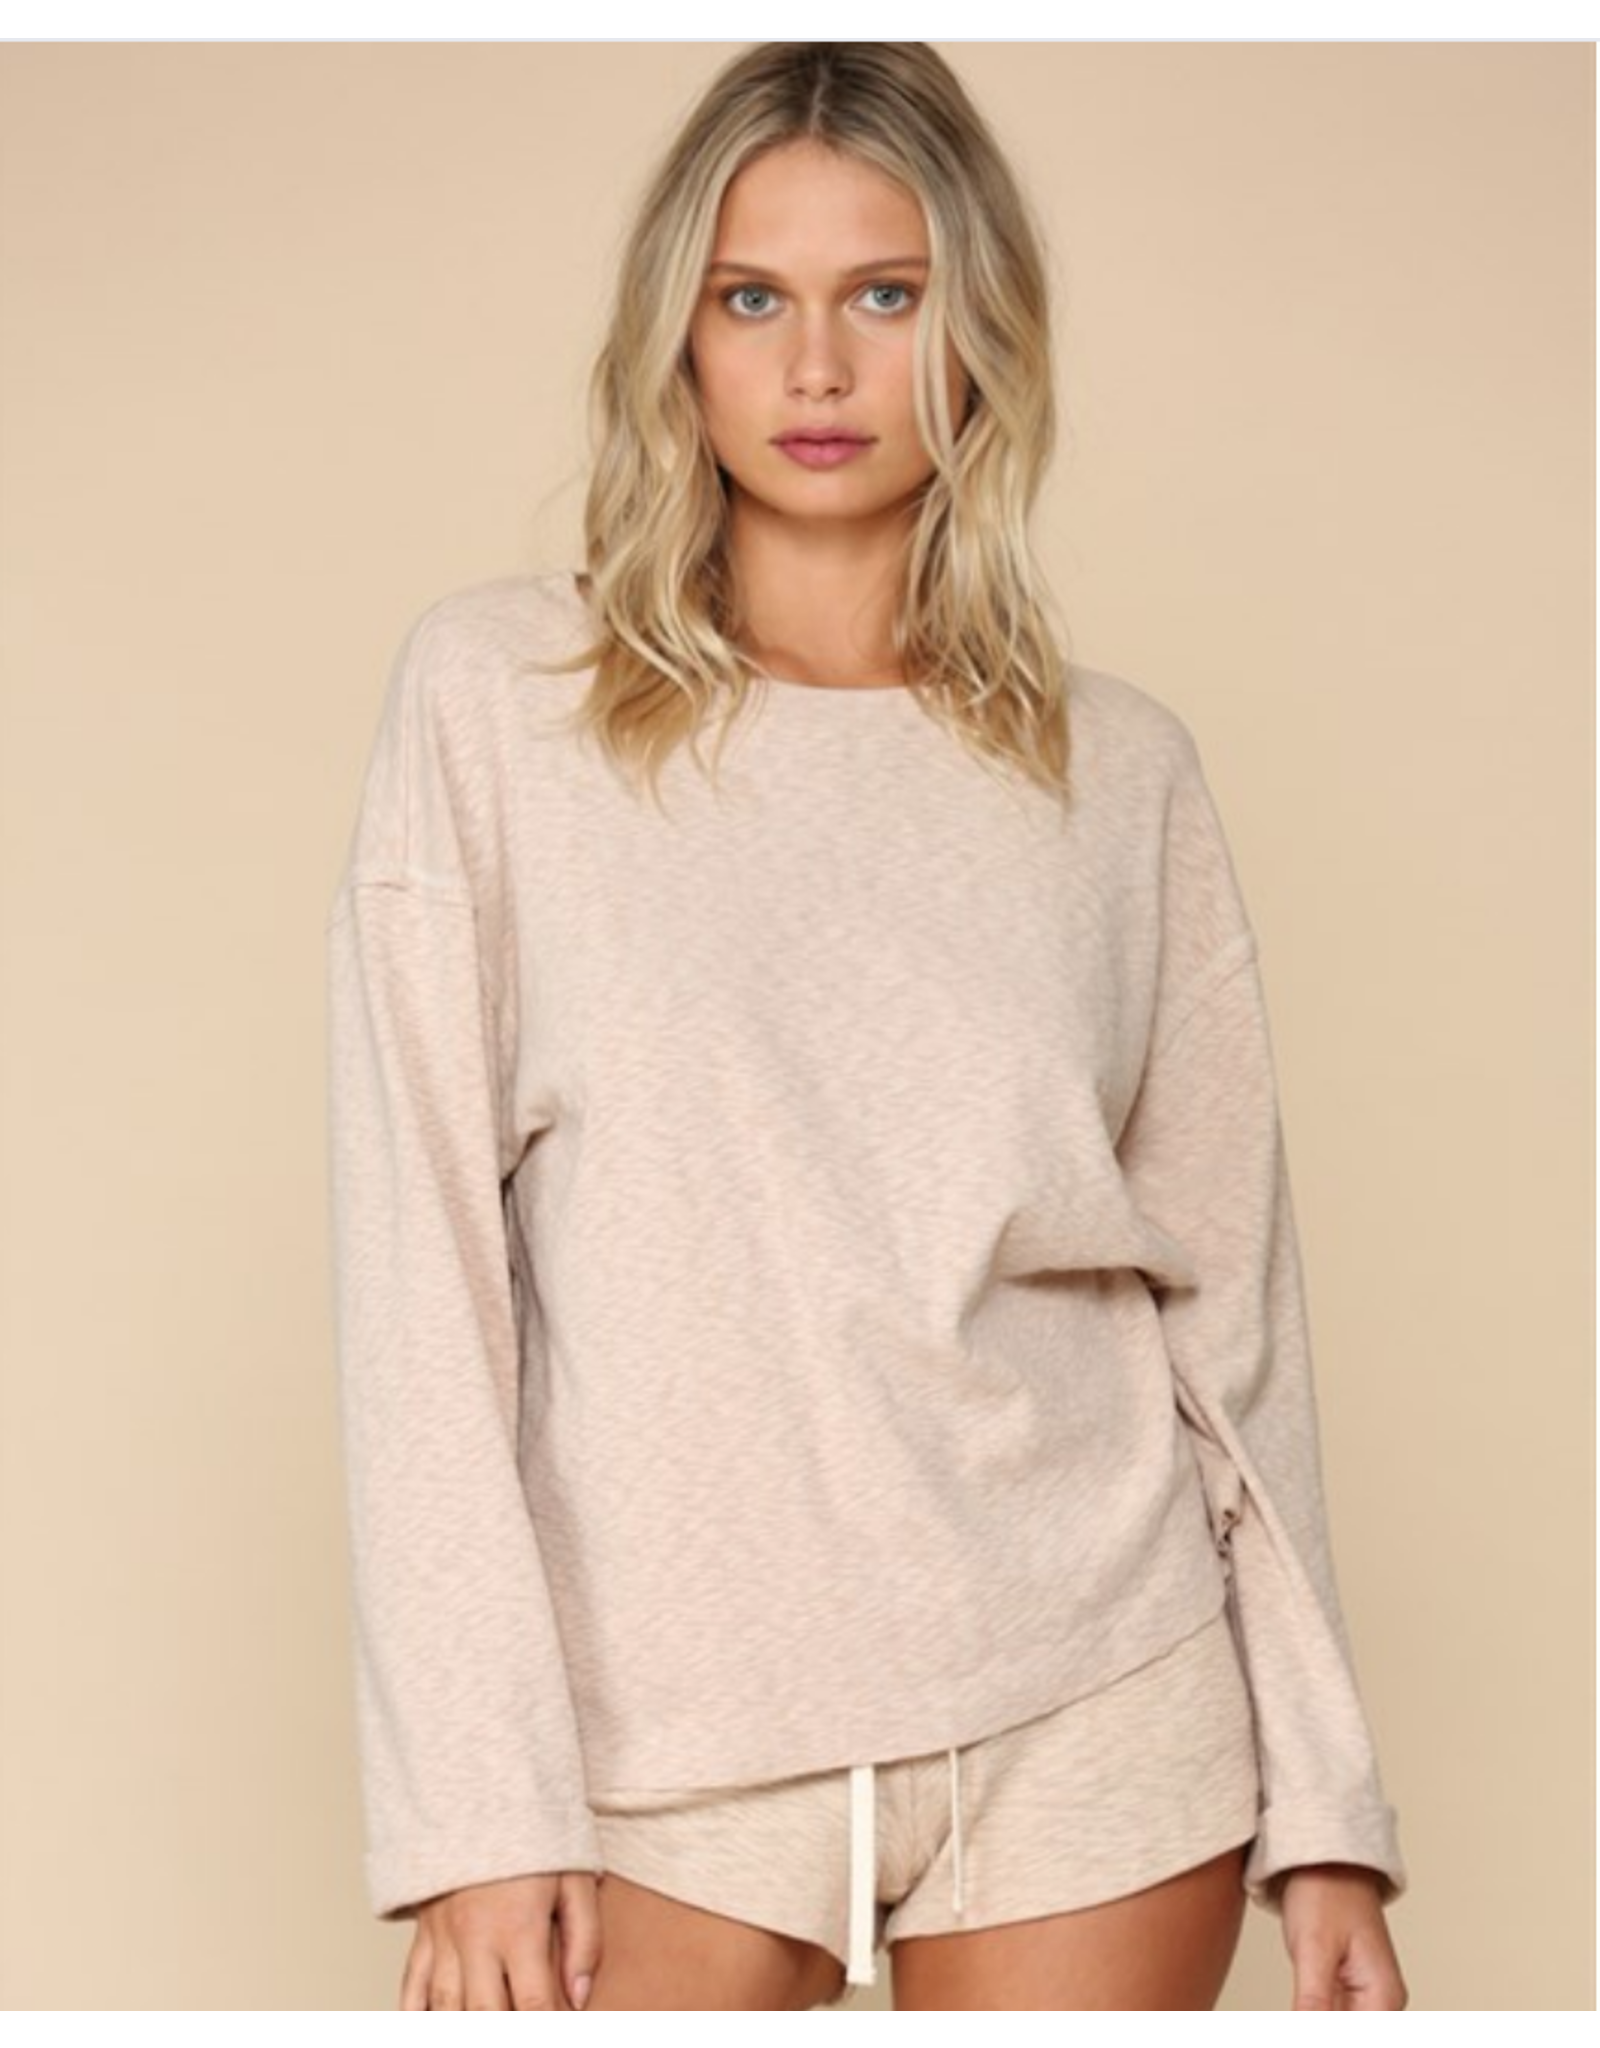 Long Sleeve Knit Sweater Top